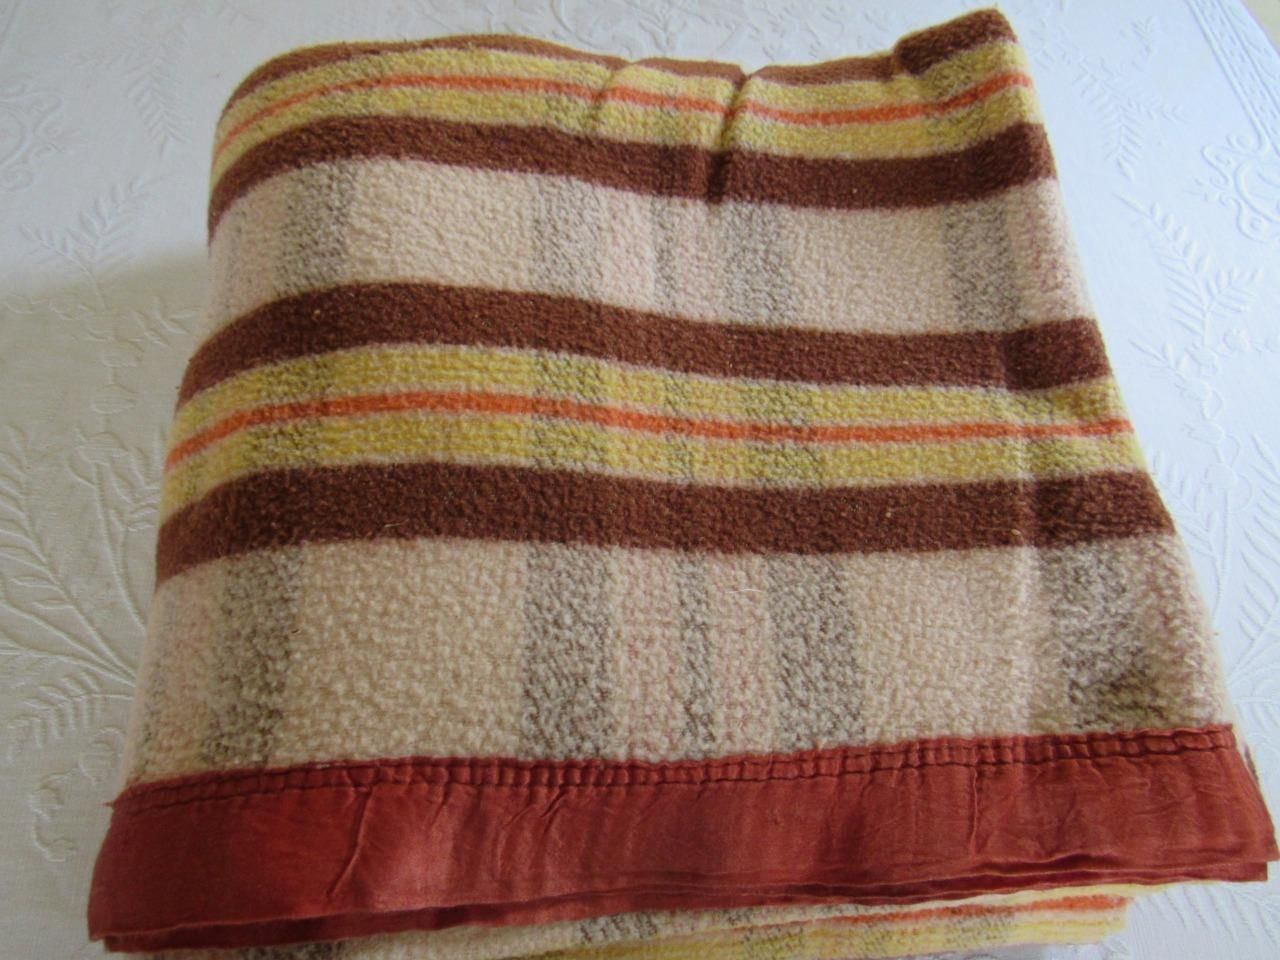 Camp Blankets Vintage 1940s Double Long Cotton Camp Blanket Brown Gold Plaid